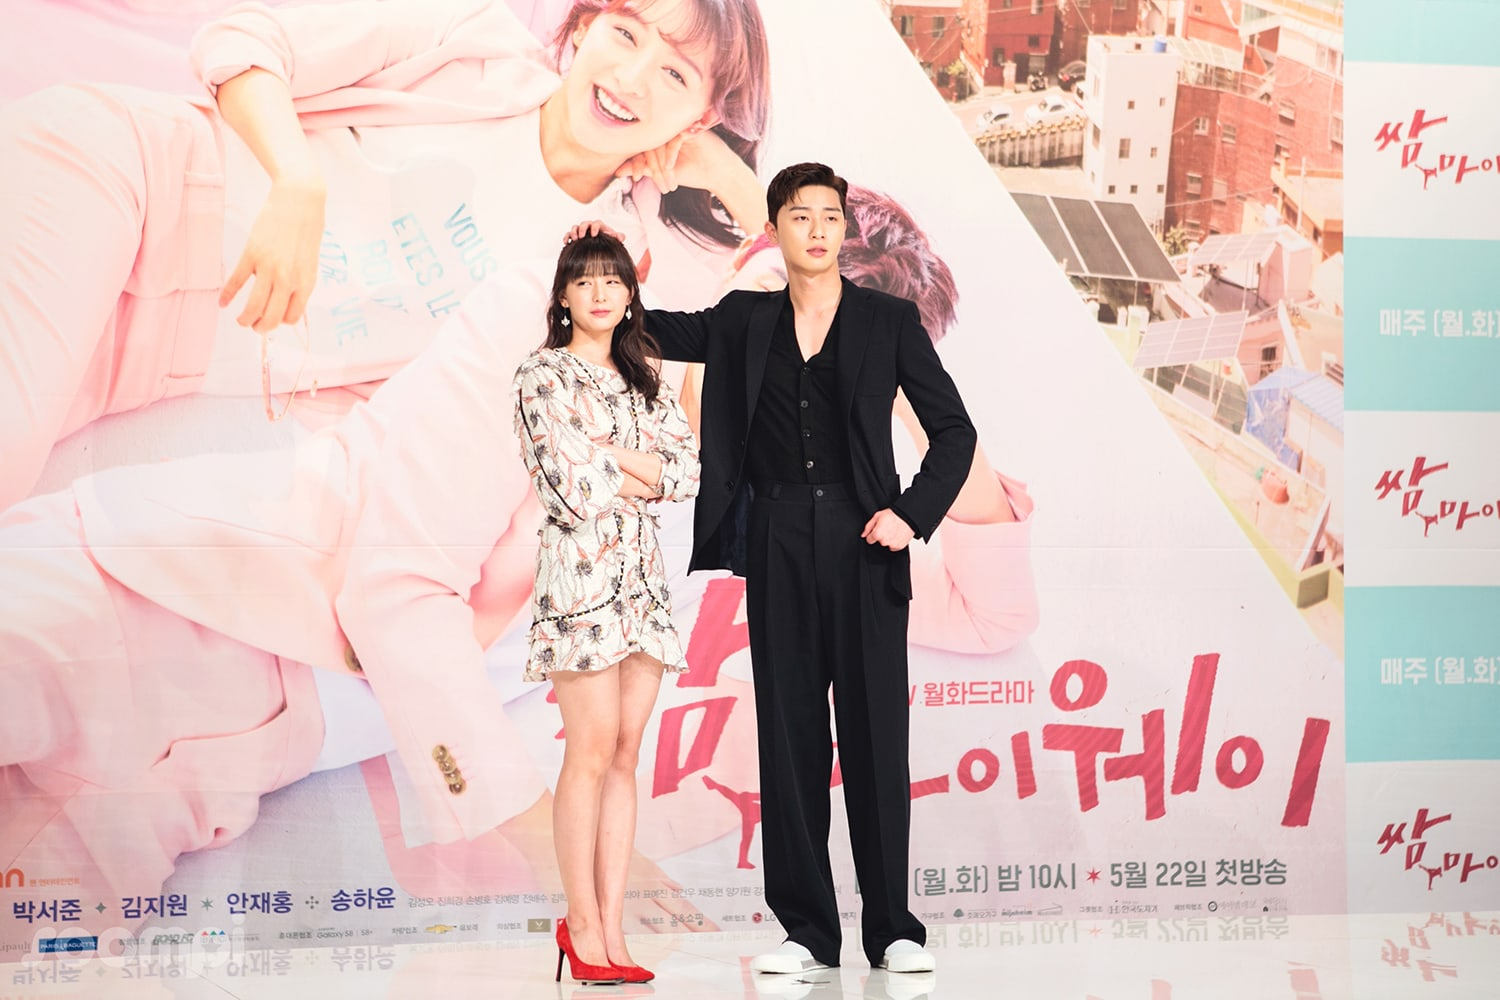 """Kim Ji Won Says Viewers Can Look Forward To Park Seo Joon's Toned Body In """"Fight My Way"""""""